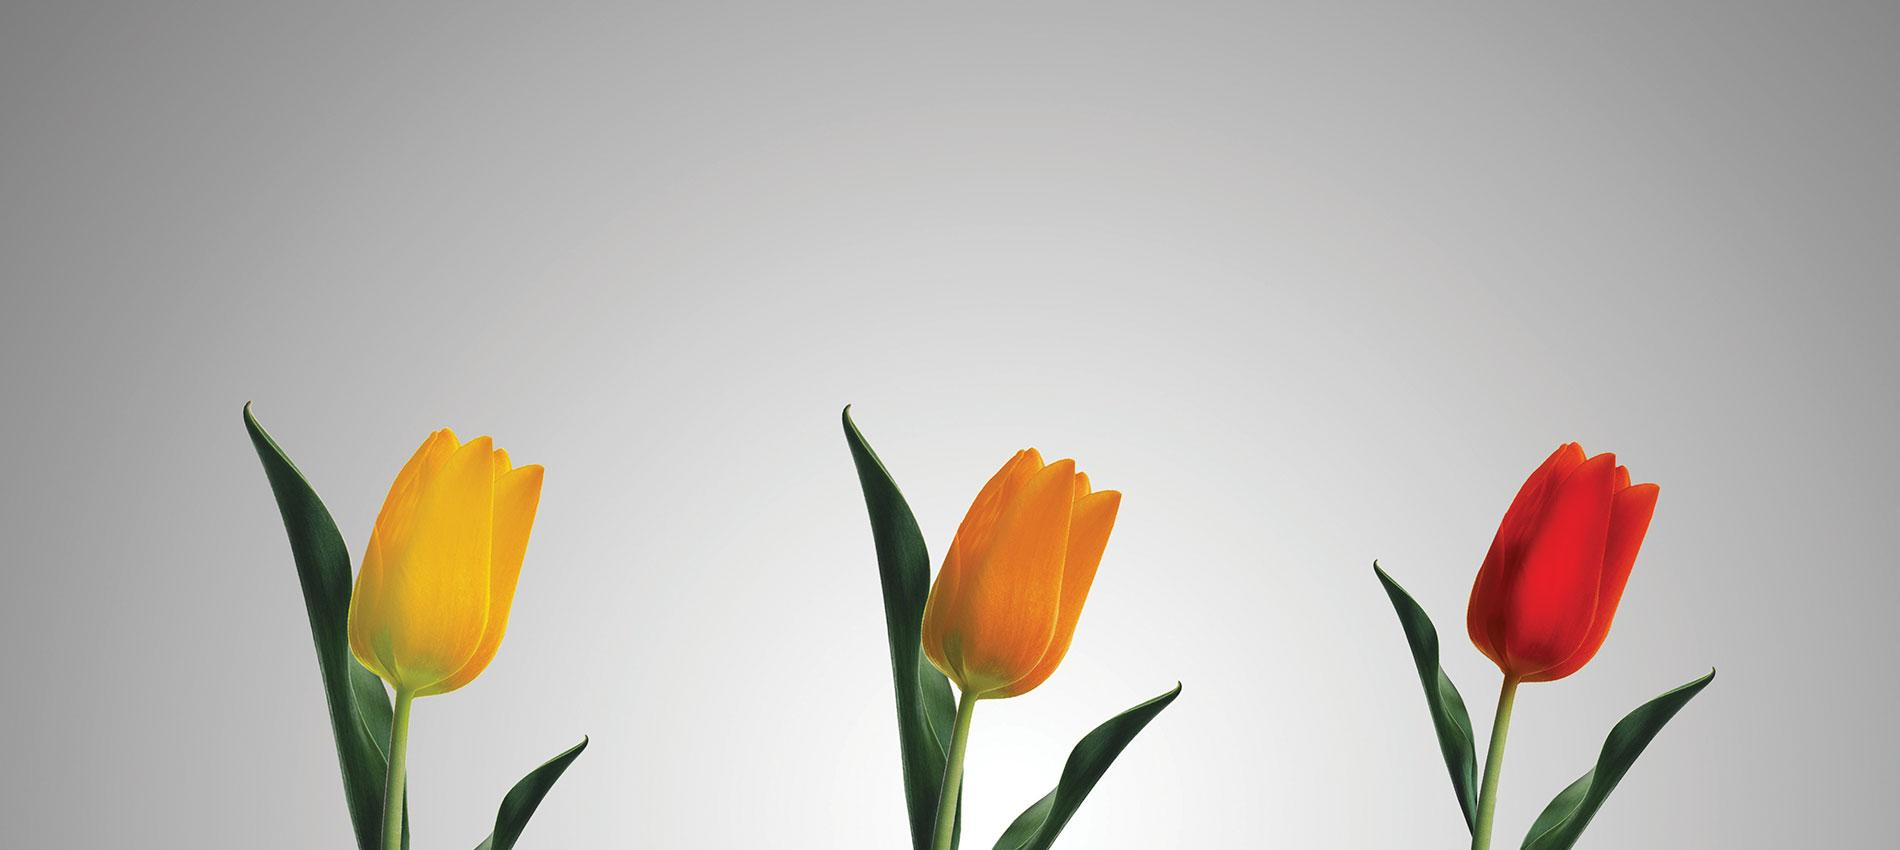 Three tulips each growing out of the base of a lamp | Shutterstock / Designs Stock